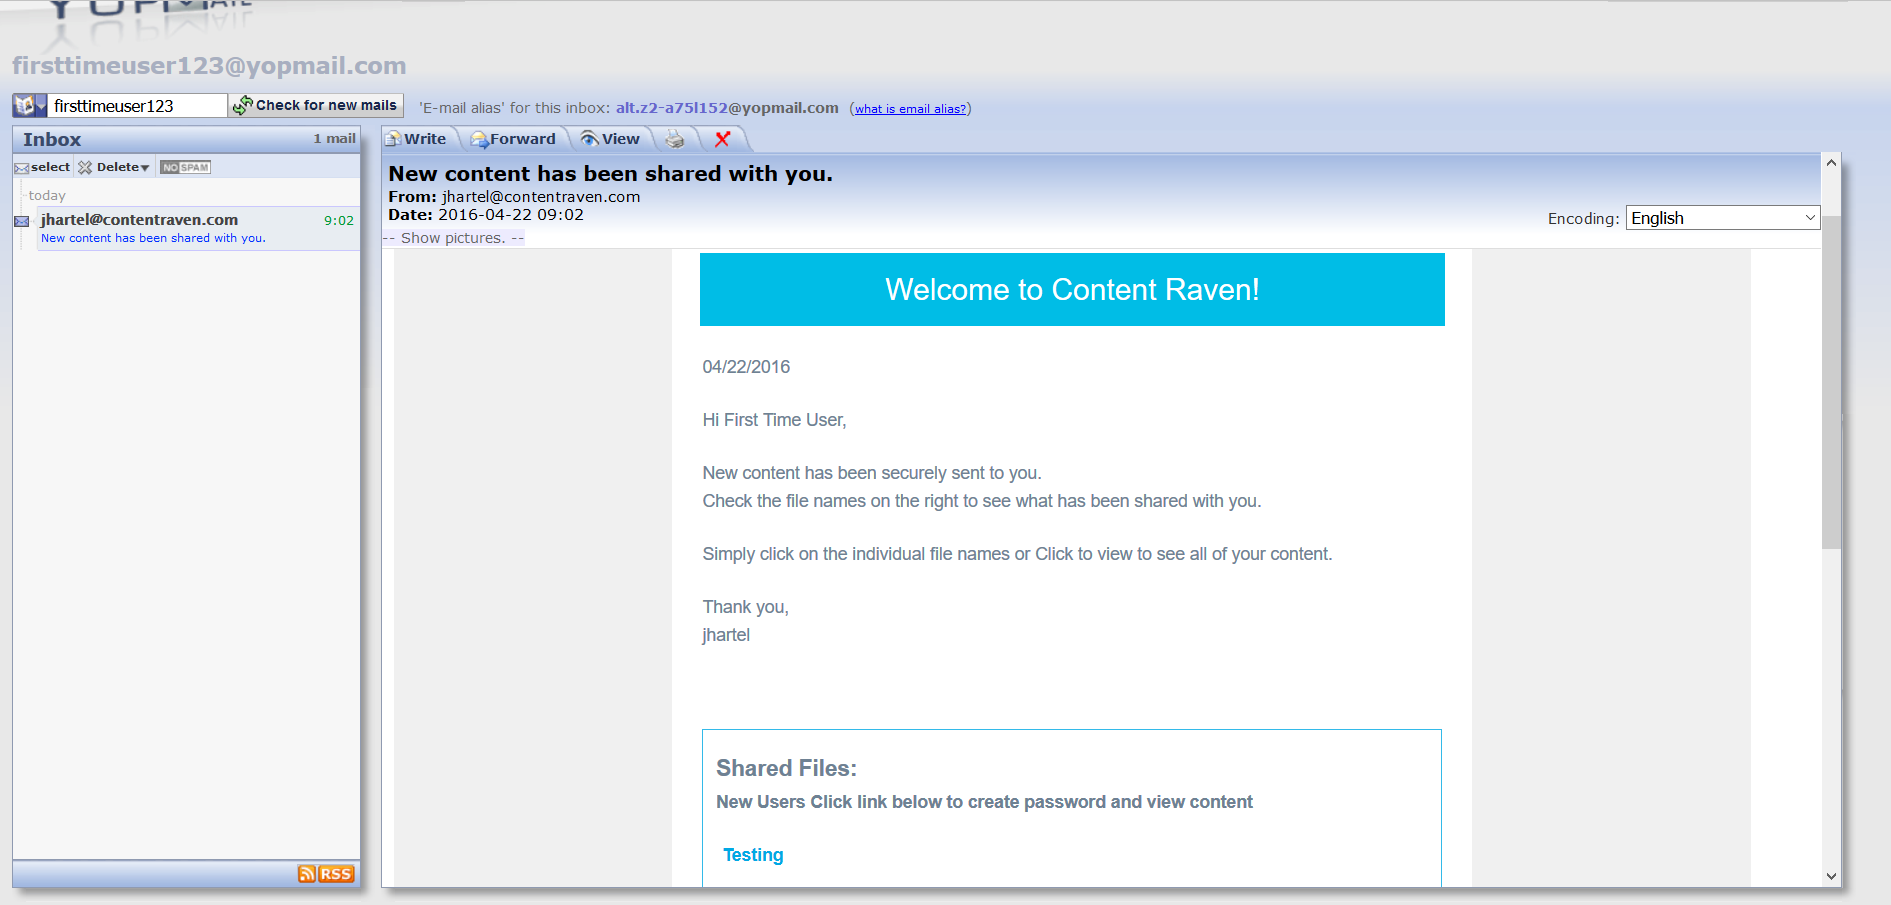 How to become a New user and access your content in Content Raven